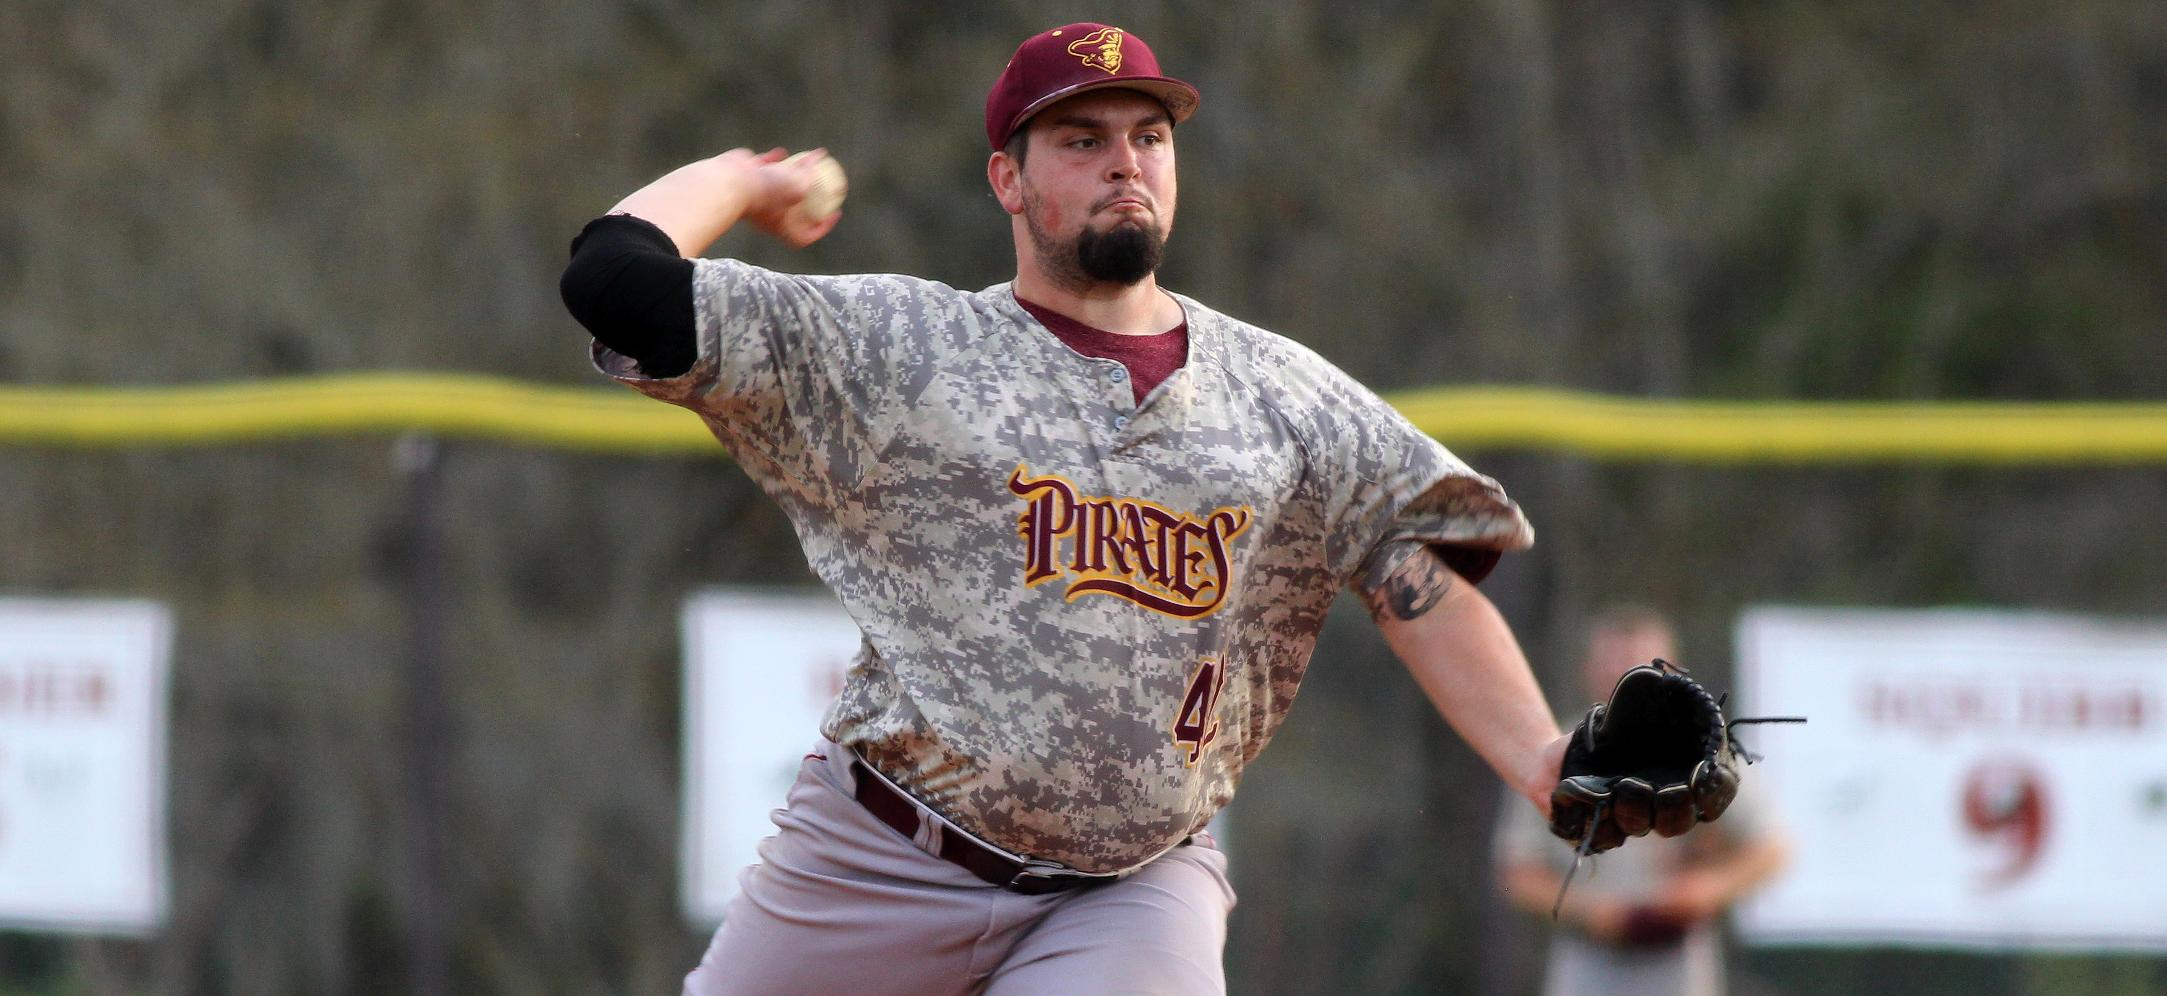 Pirates Notch First PBC Win With 6-4 Victory Over Flagler Baseball